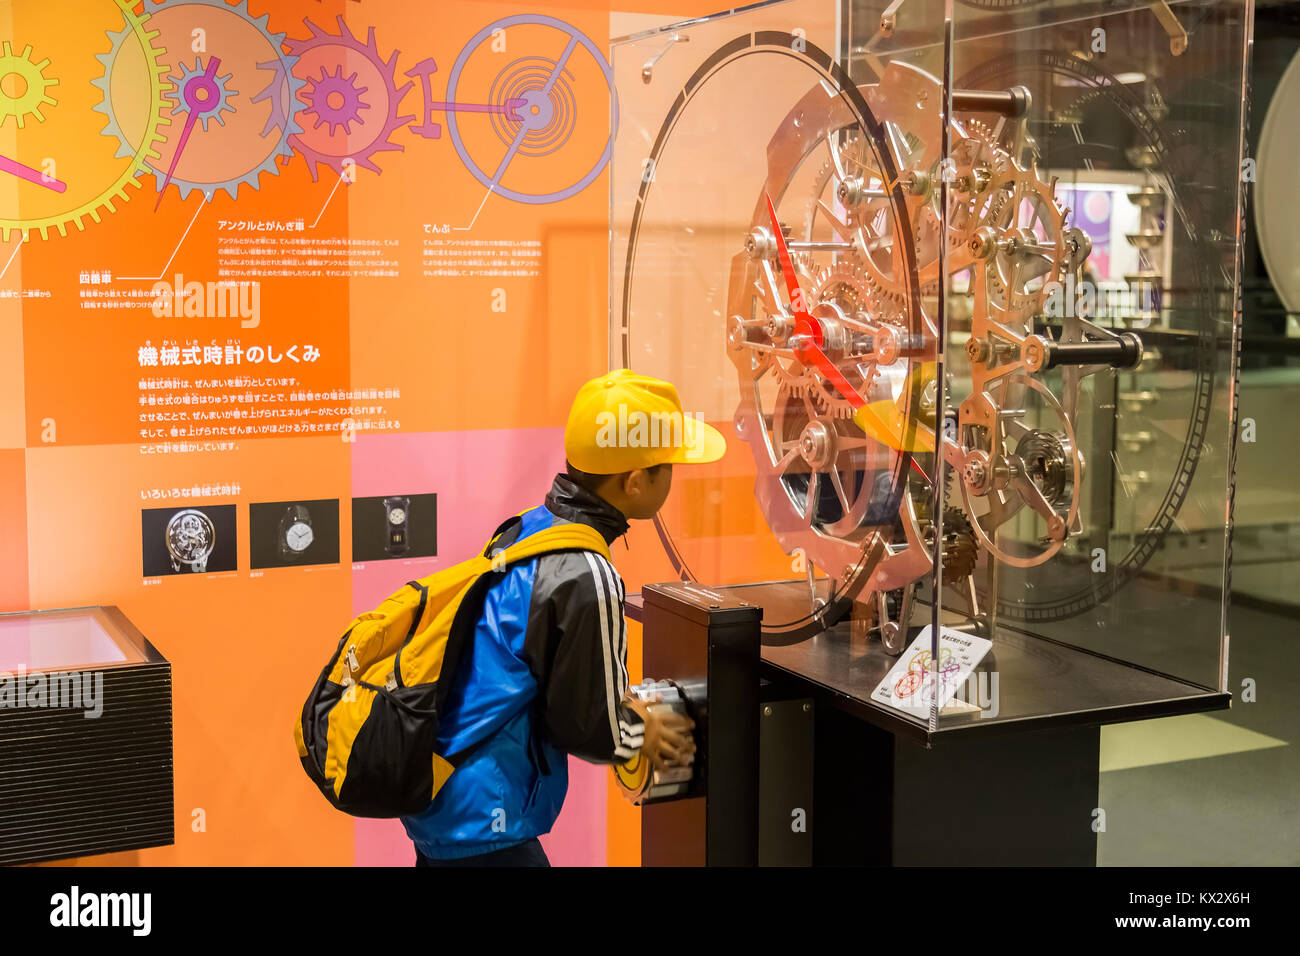 NAGOYA, JAPAN - NOVEMBER 18, 2015: Nagoya City Science Museum houses the largest planetarium in the world, it portrays Stock Photo